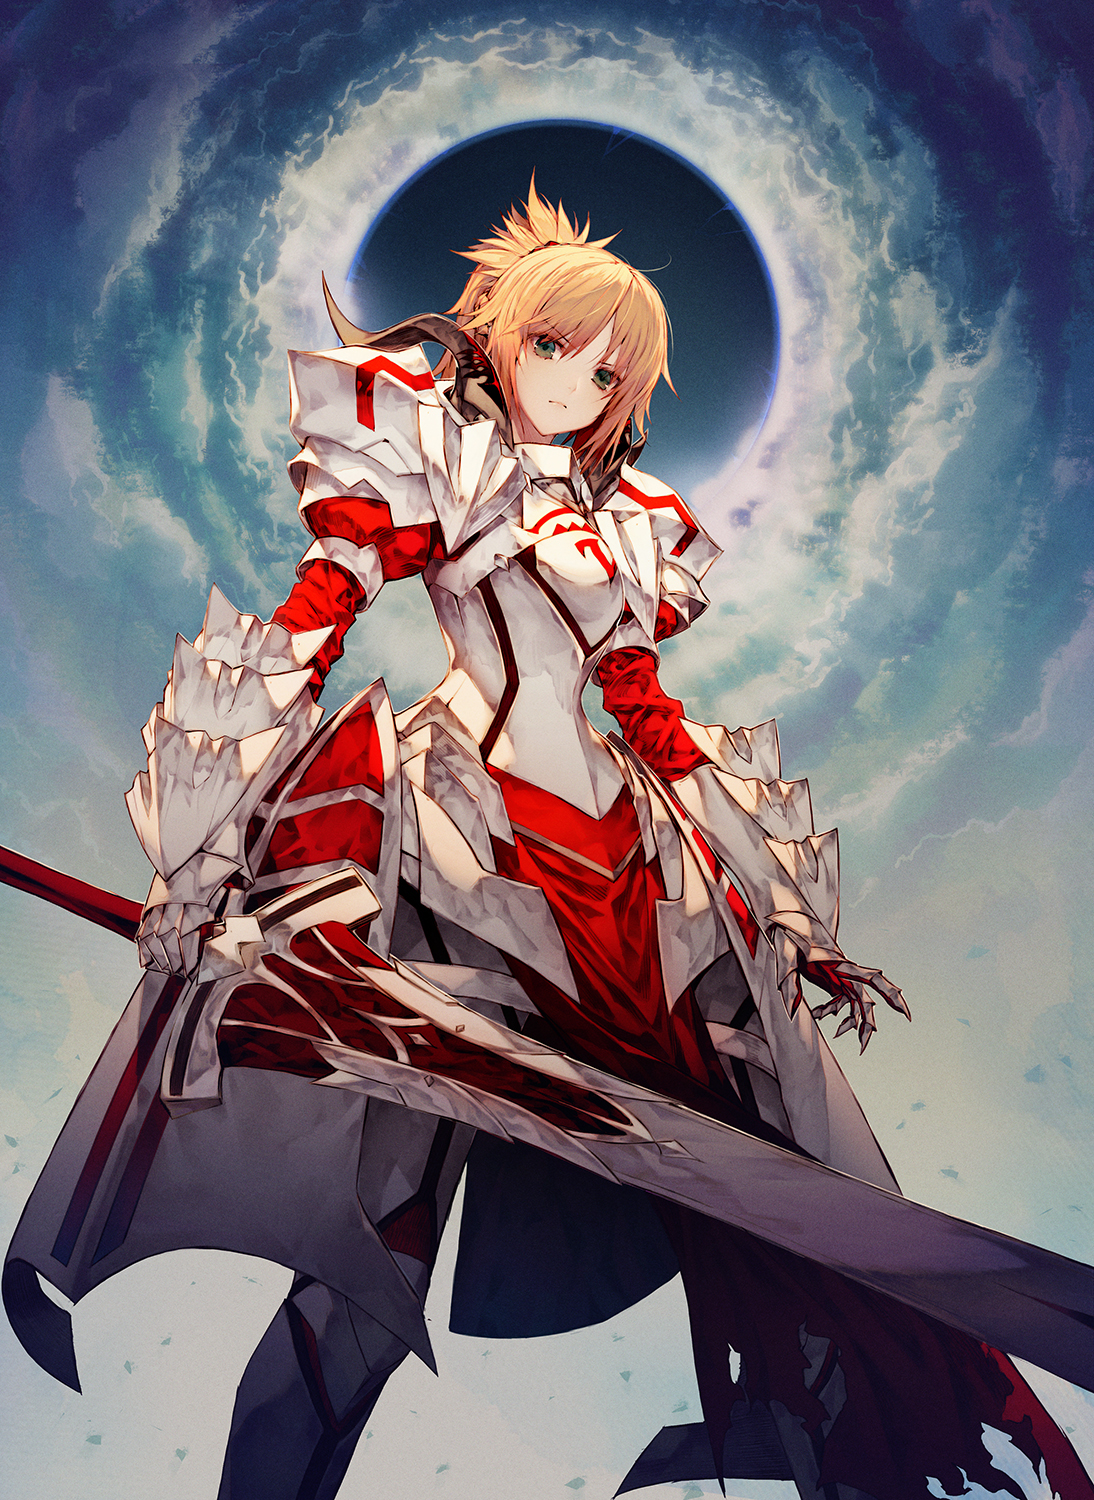 Anime Fate Apocrypha Fate Series Anime Girls Saber Mordred Fate Wallpaper Phone 160304 Hd Wallpaper Backgrounds Download